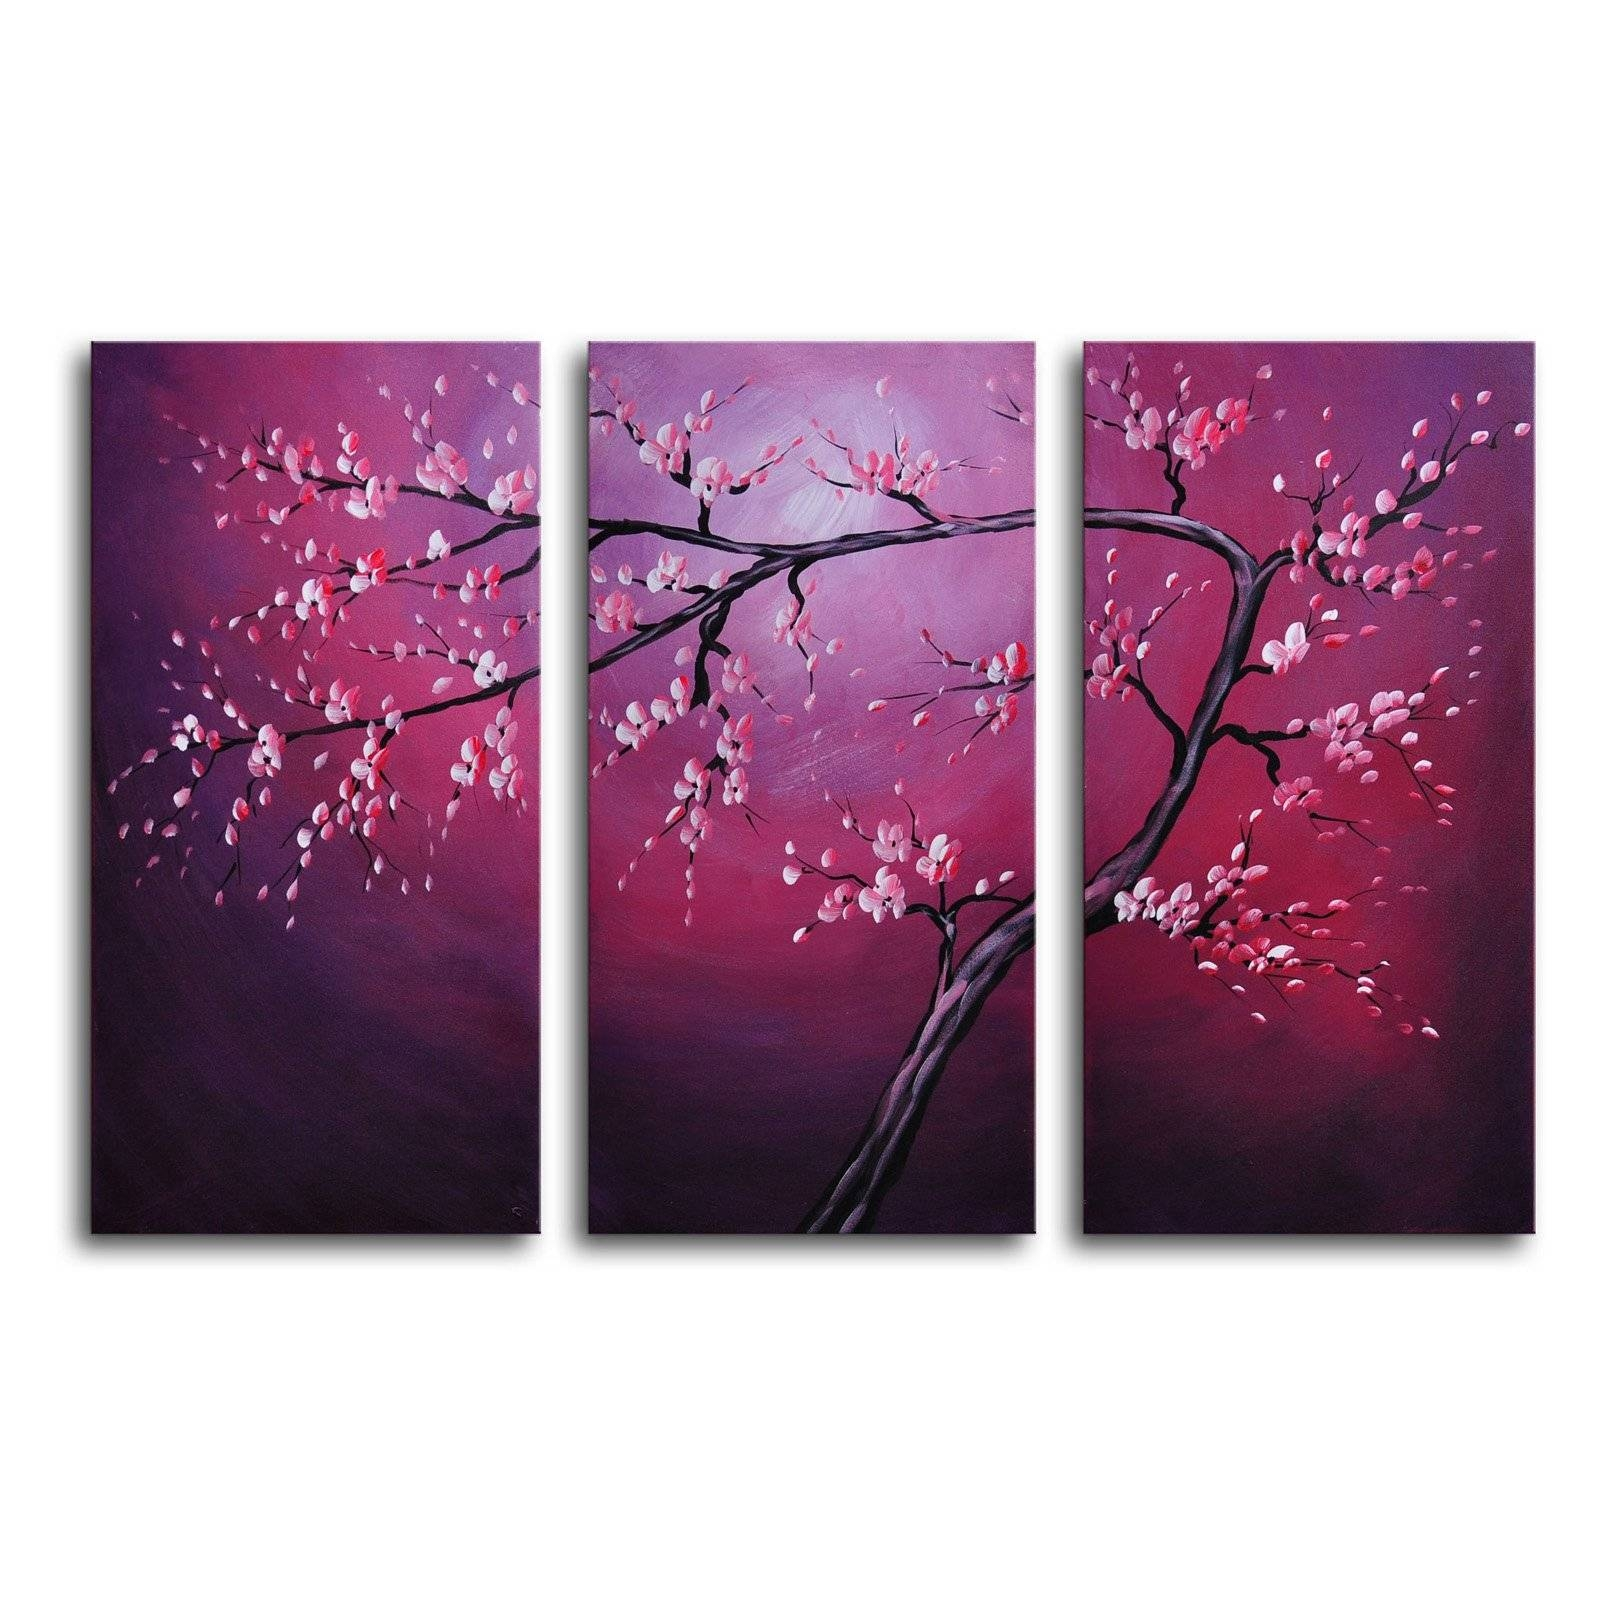 Pink On Crimson 3 Piece Canvas Wall Art – 36W X 24H In (View 17 of 20)